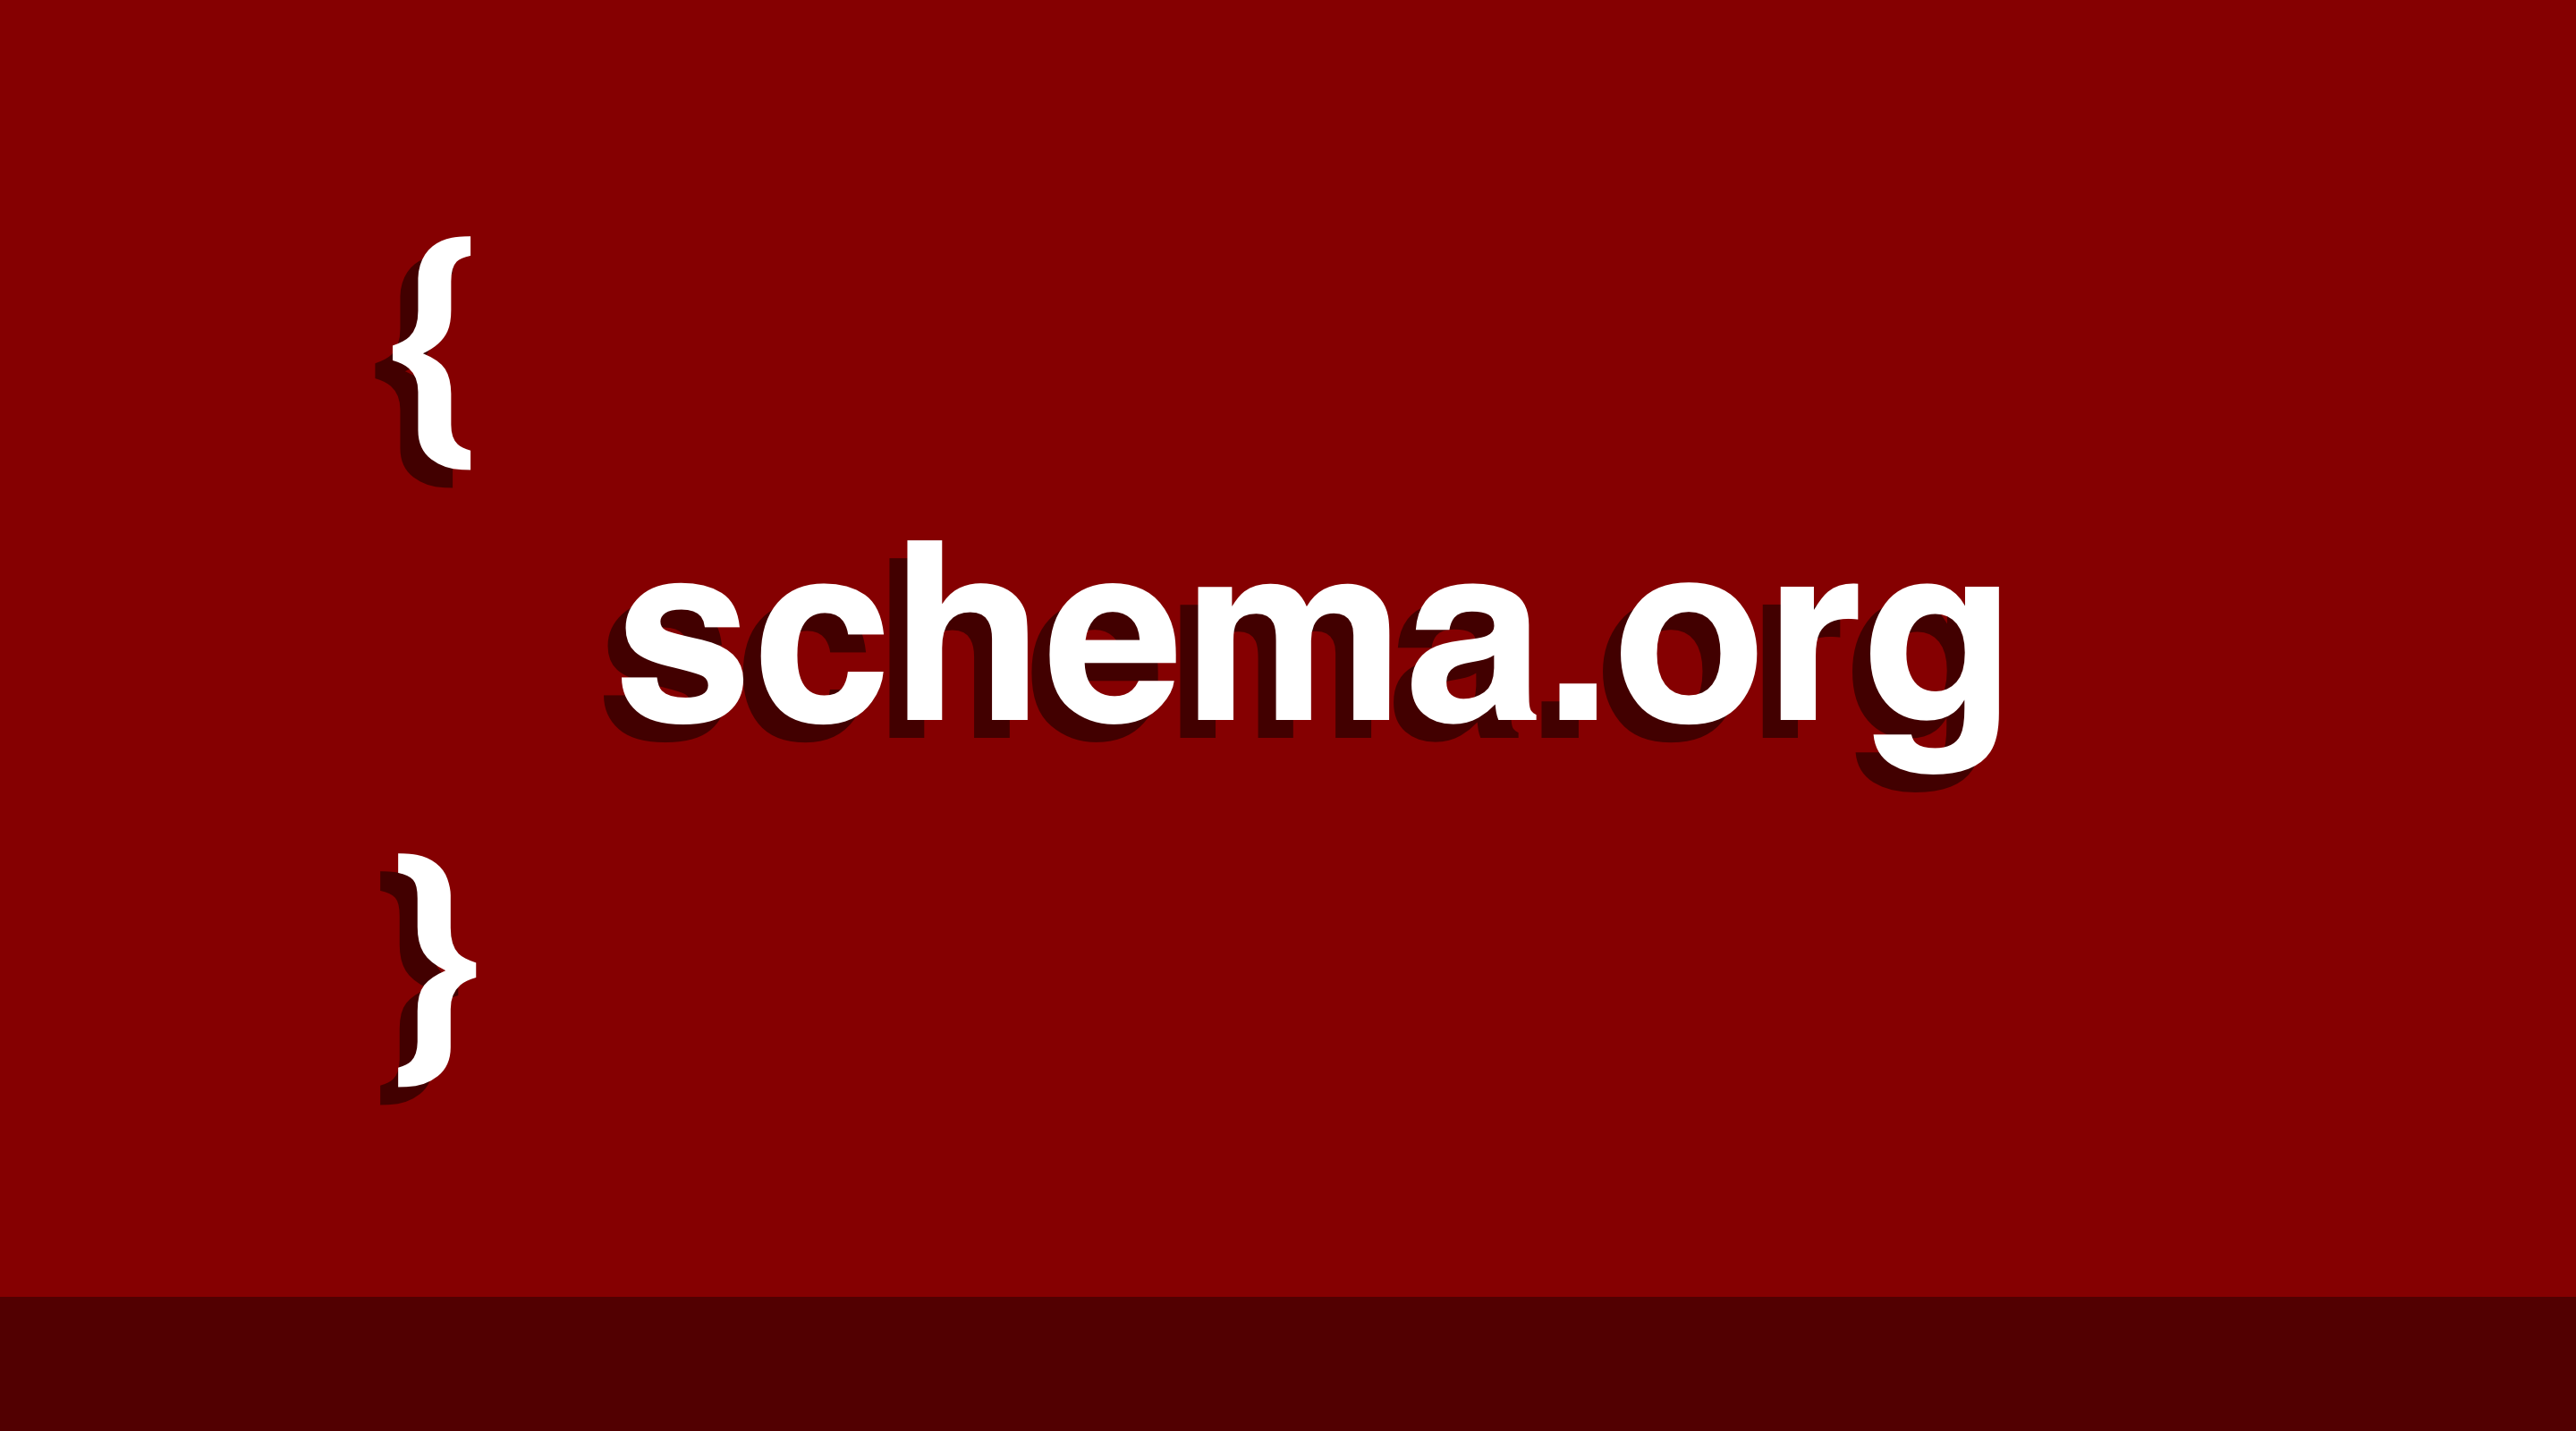 How to create citations in schema.org